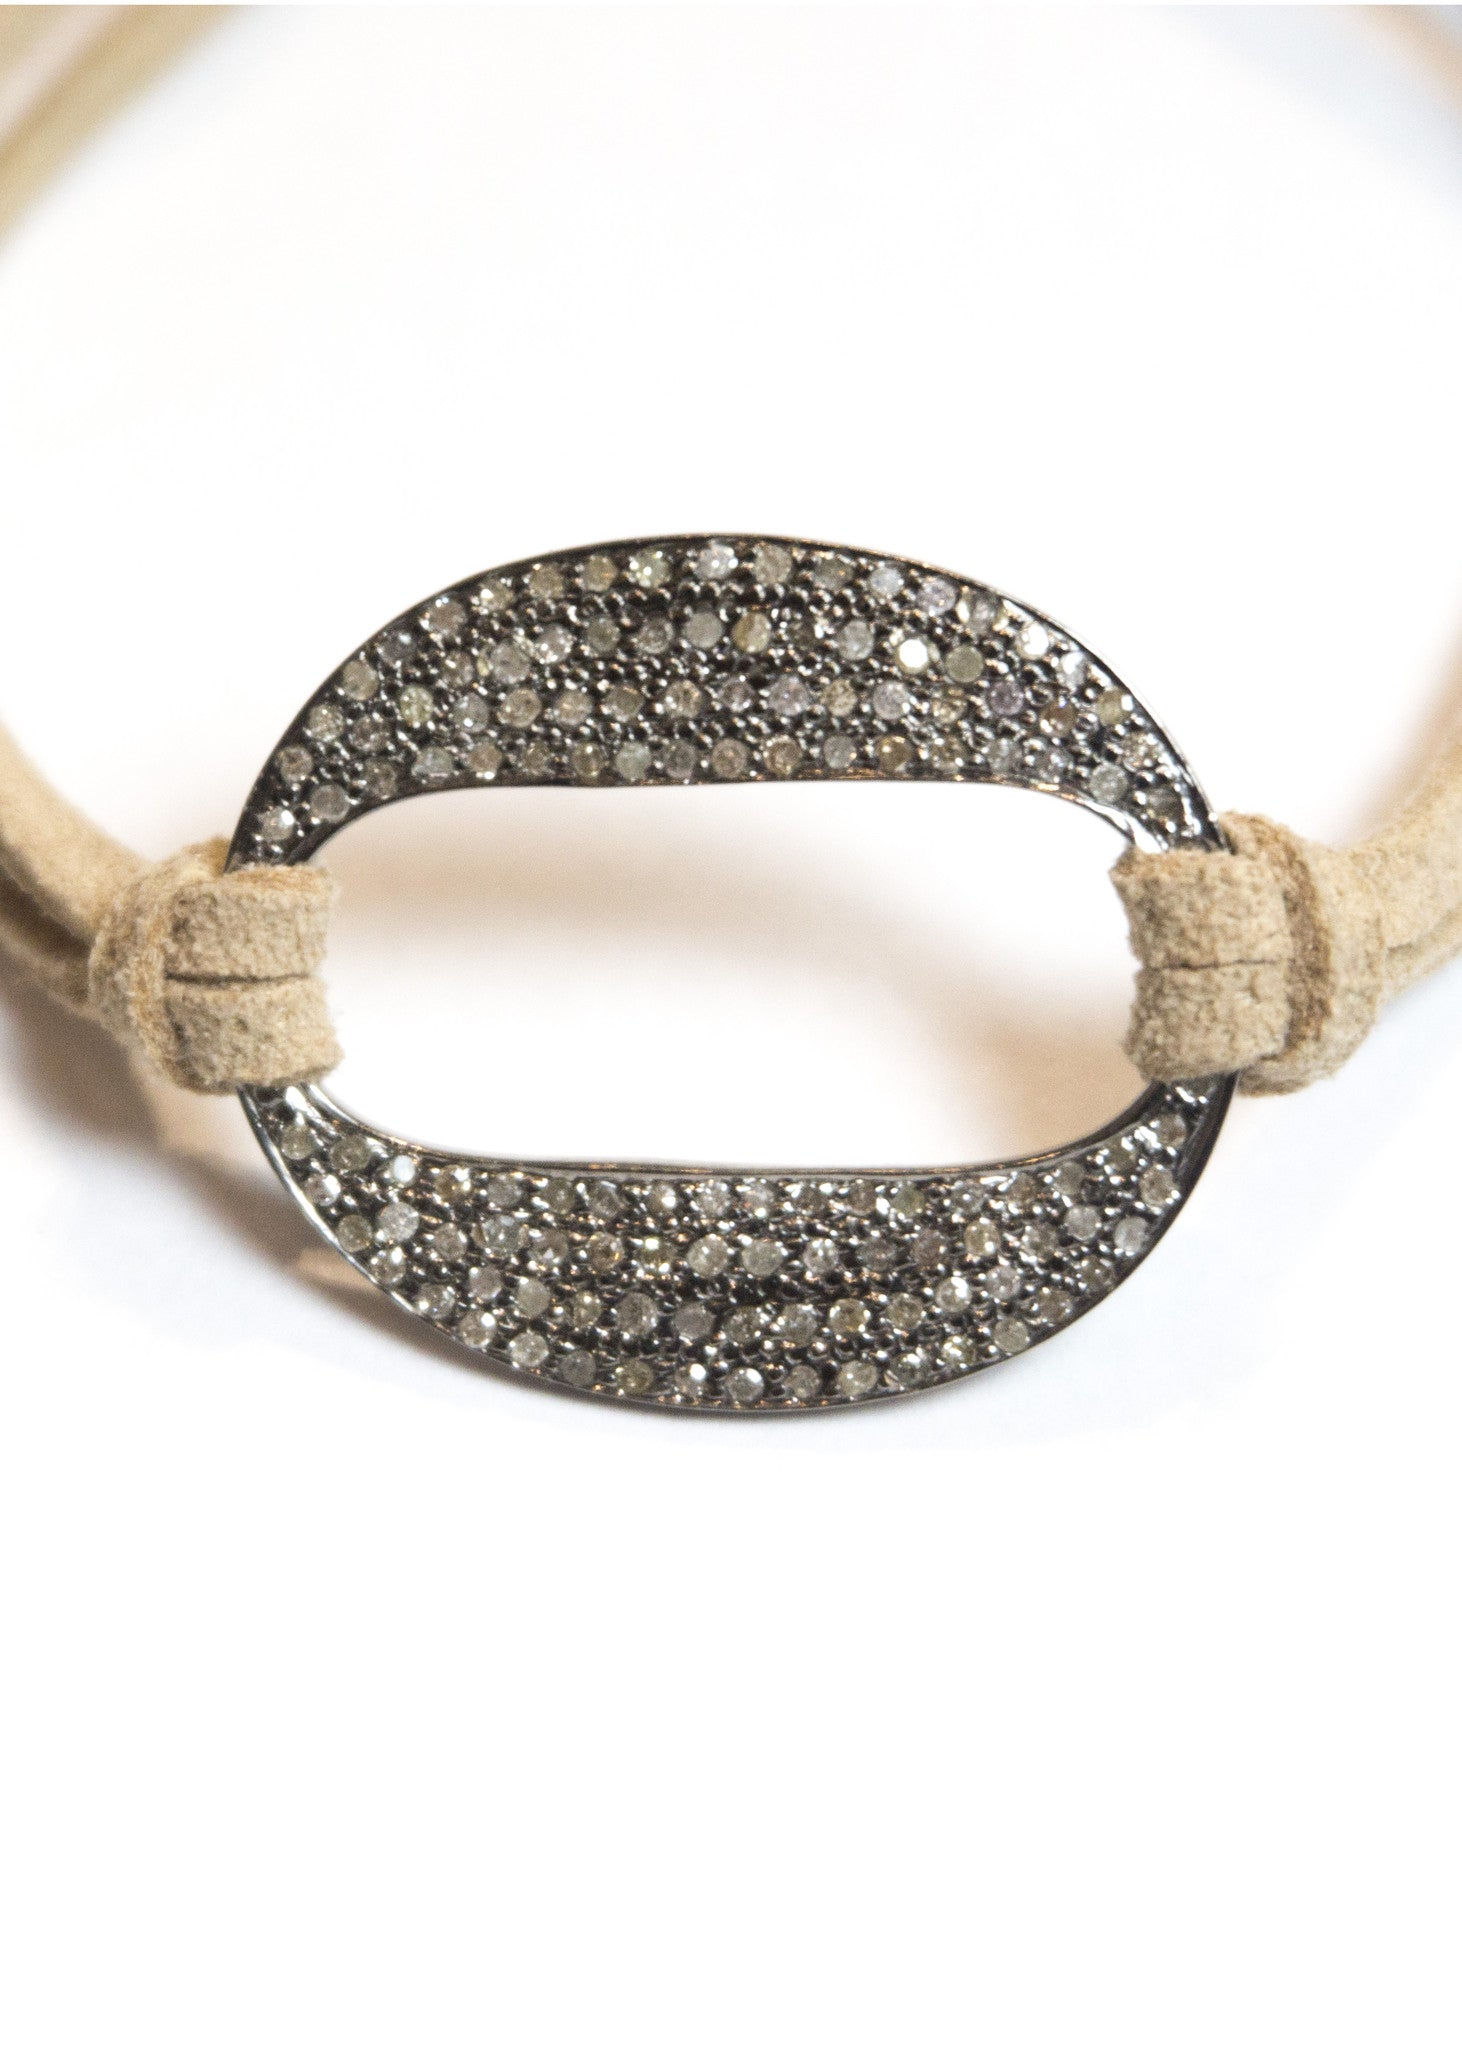 Lera Jewels large diamond oval connector on suede with diamond pull